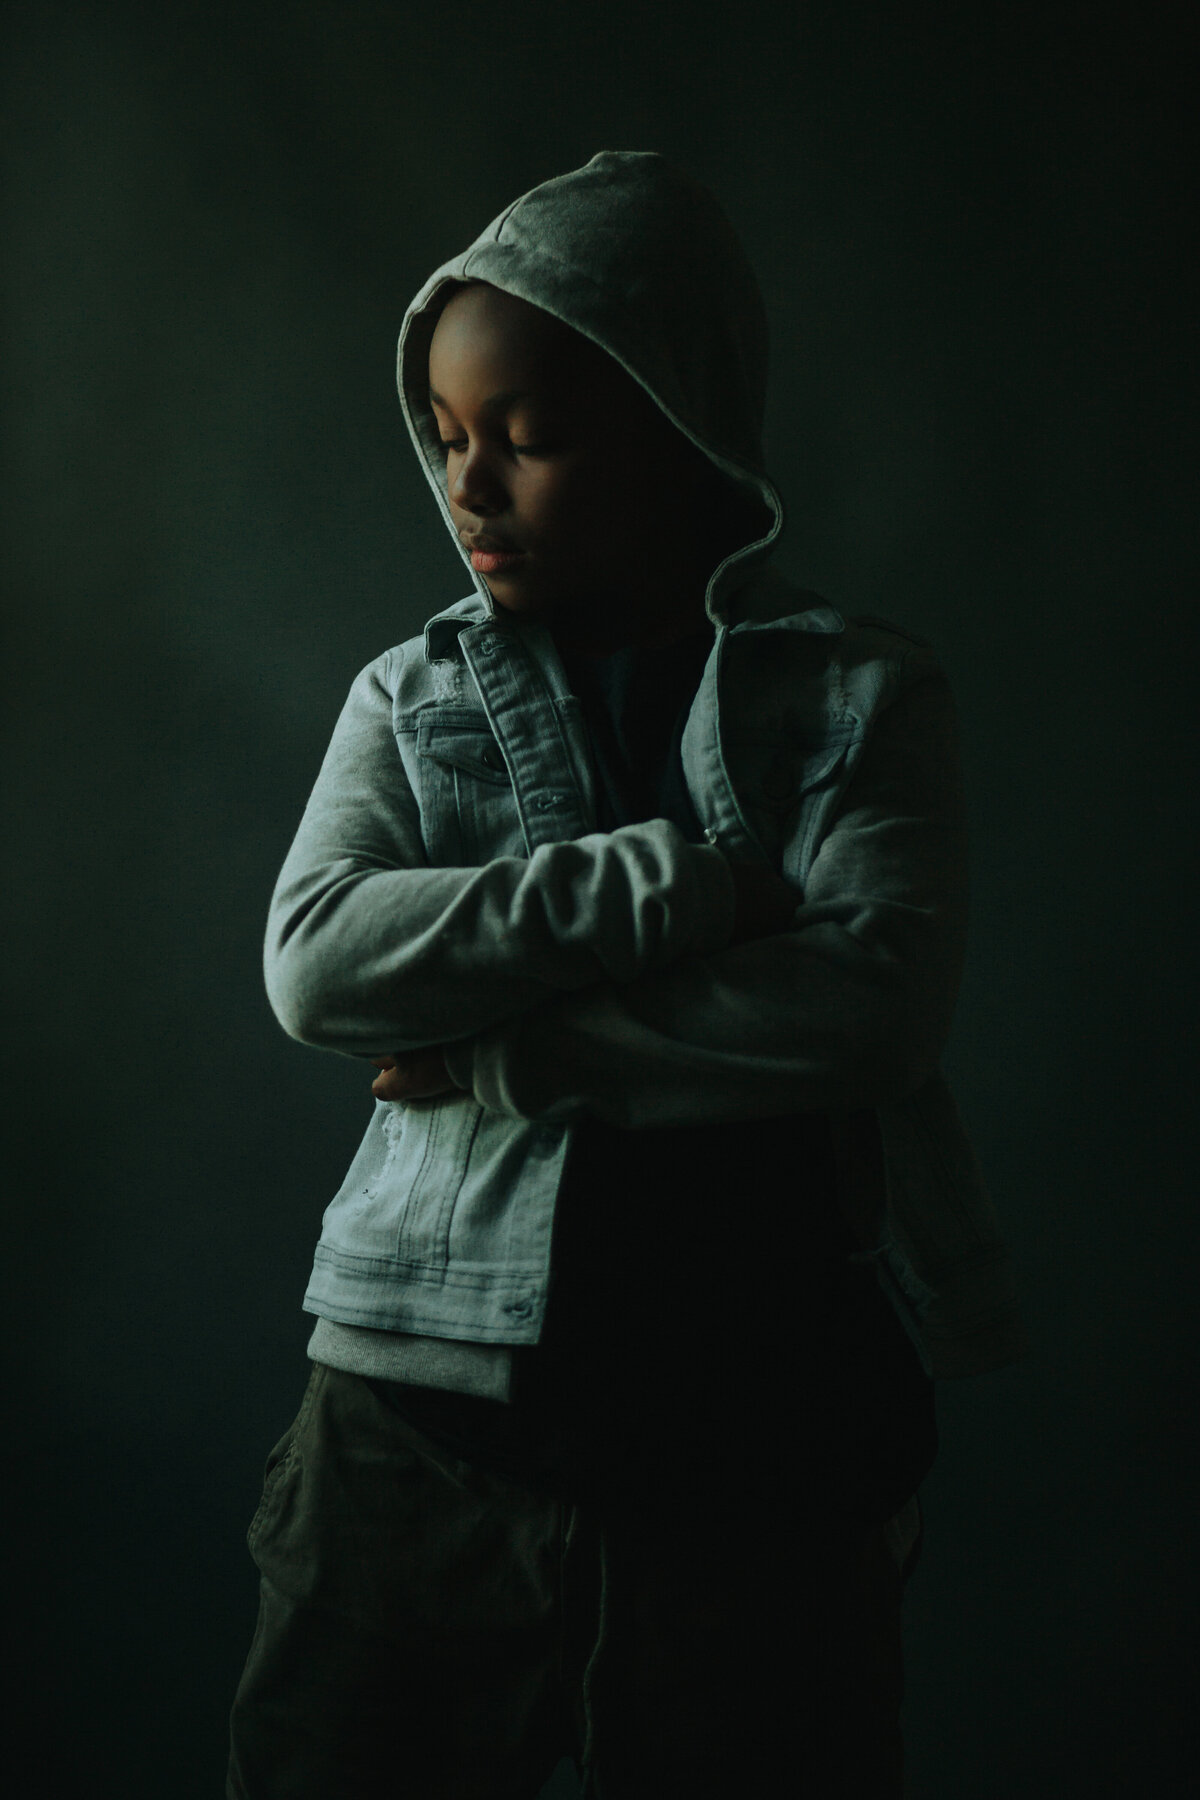 Portrait of a boy in a hooded jacket, arms crossed, looking camera left.